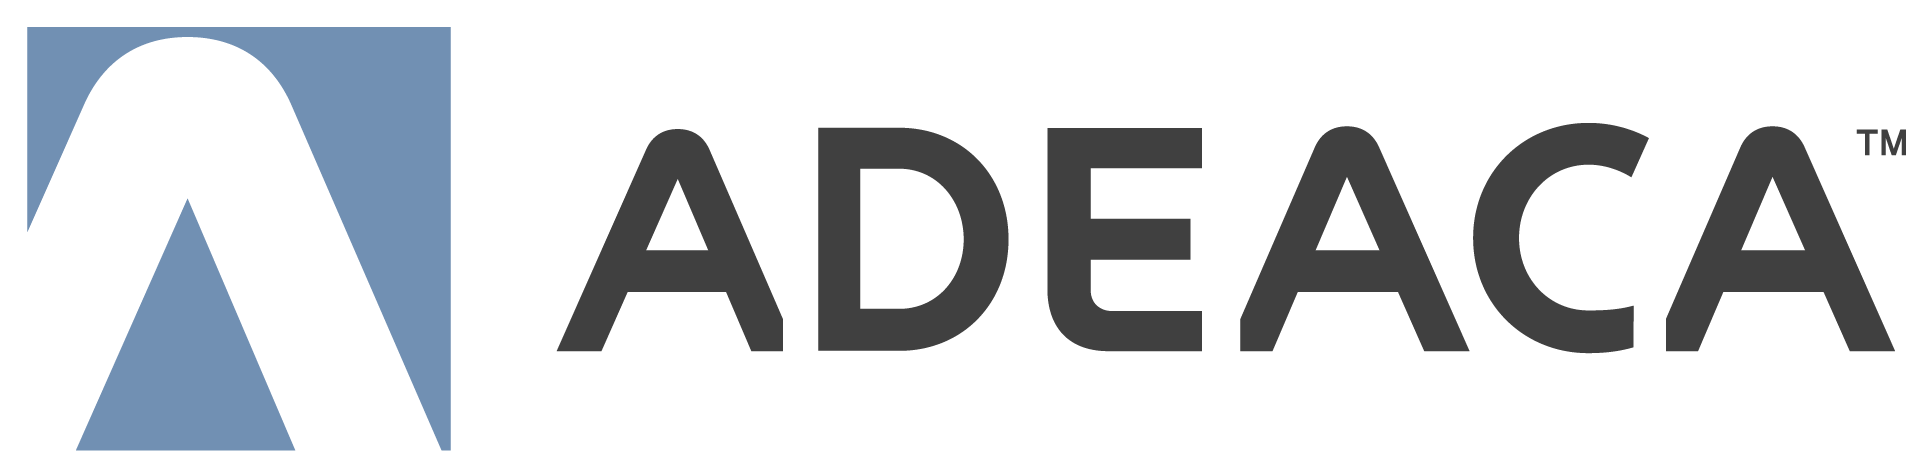 Adeaca Project Management Software for Microsoft Dynamics 365 Replaces ETO ERP